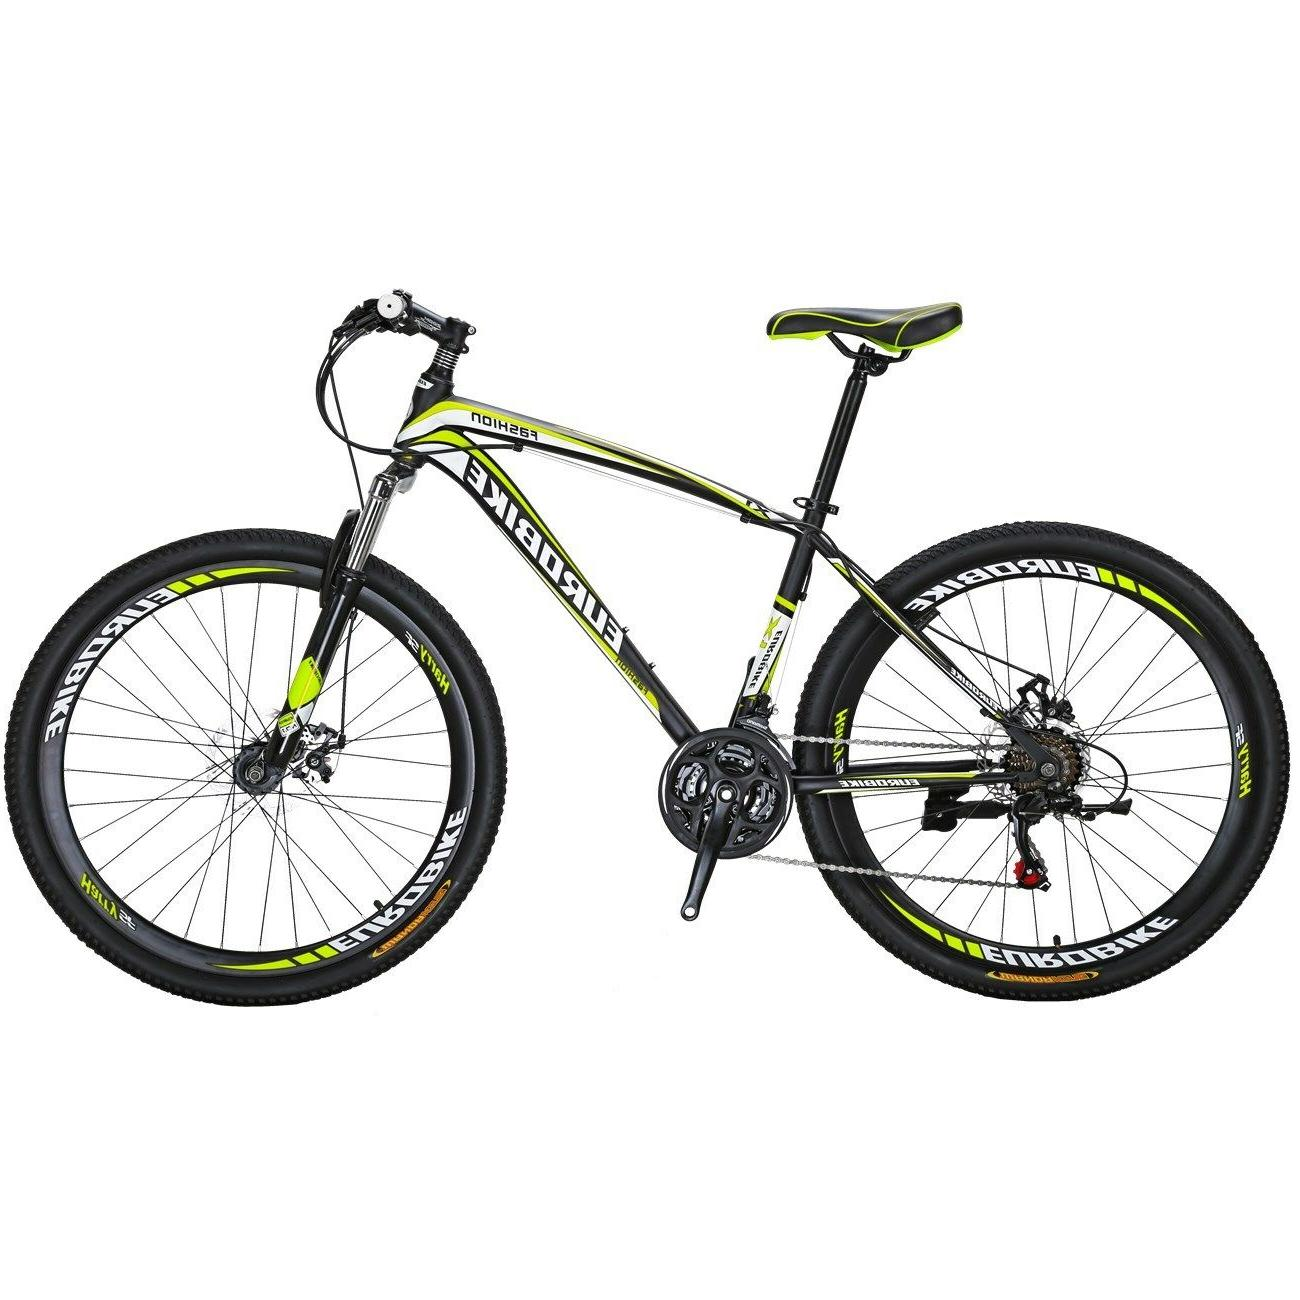 "Mountain Shimano 21 Mens Bikes MTB 27.5"" bicycle"